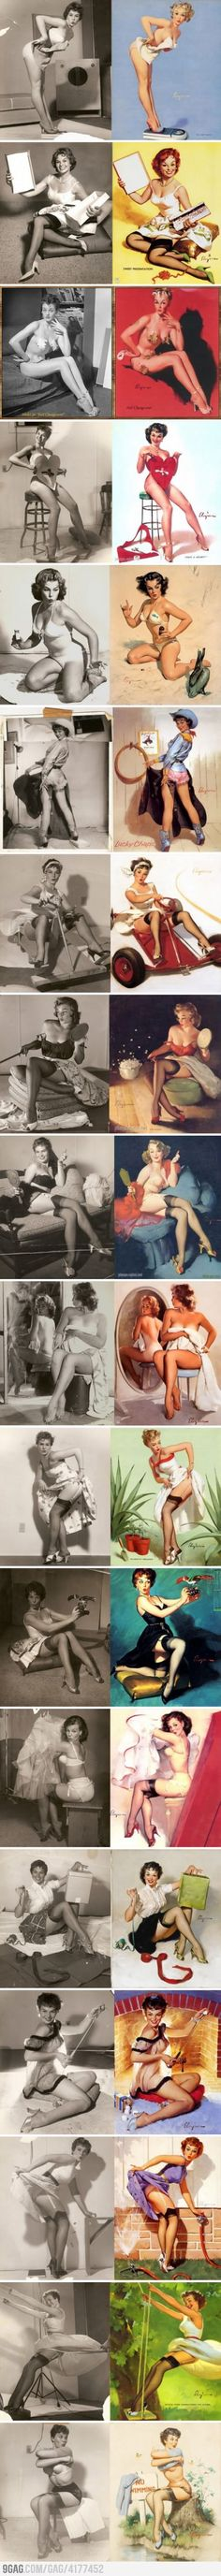 Real girls vs. Pin-up girls